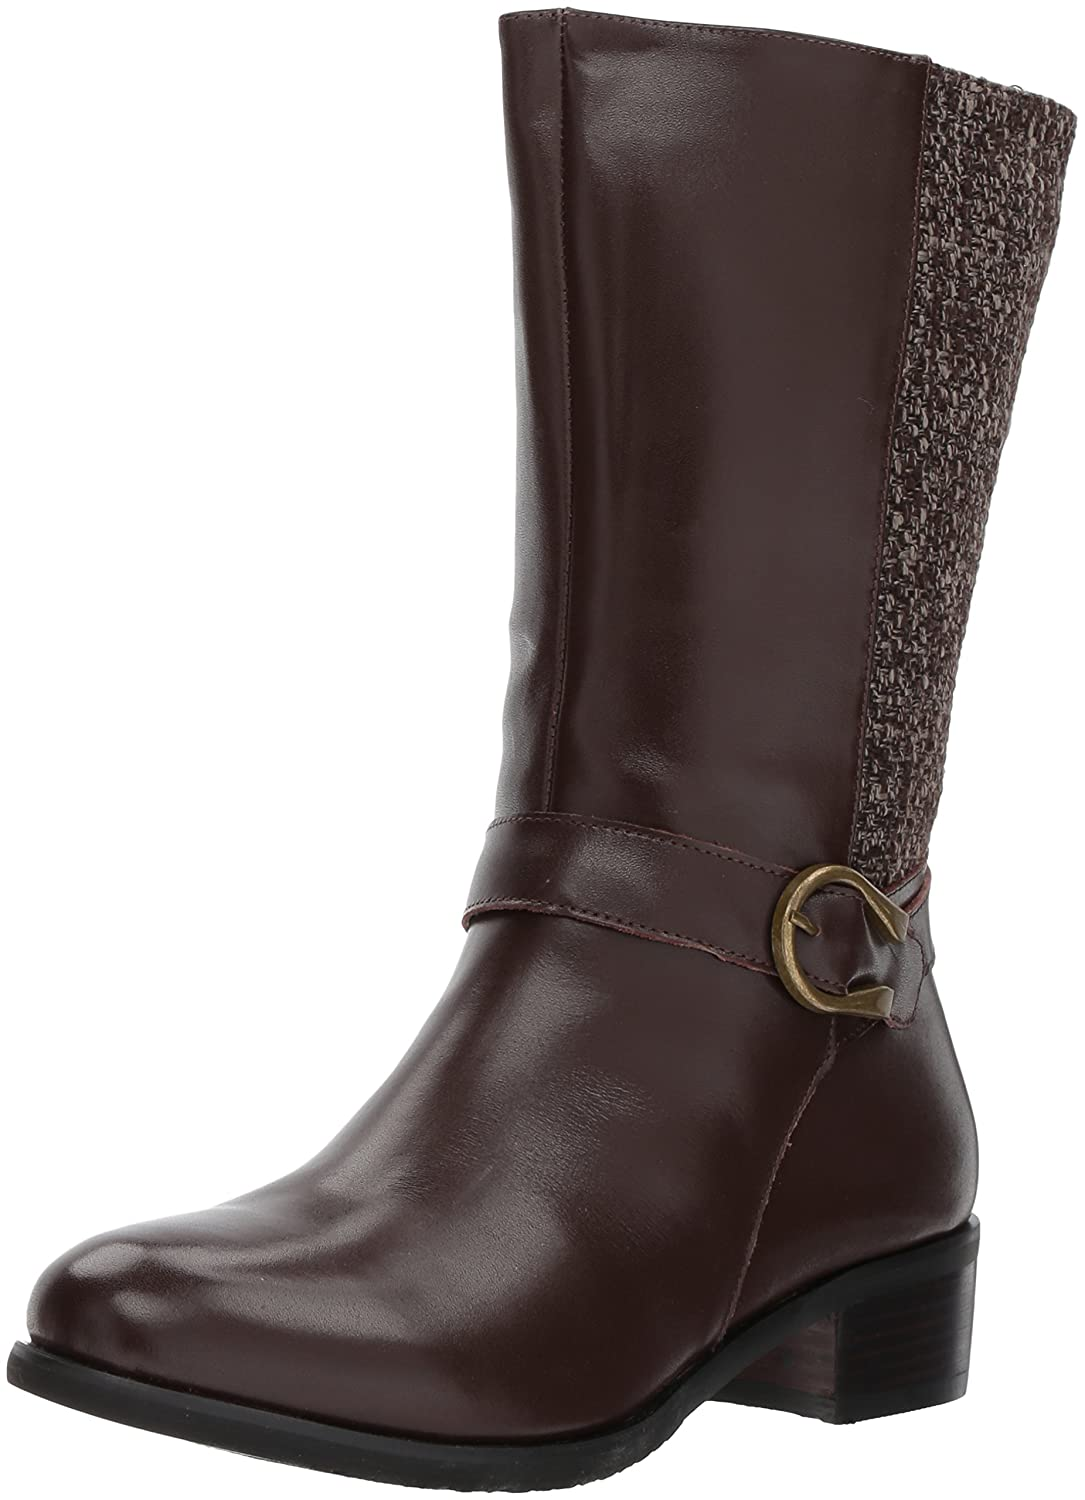 Propét Women's Tessa Riding Boot B01N9C3K2I 9 2E US|Brown